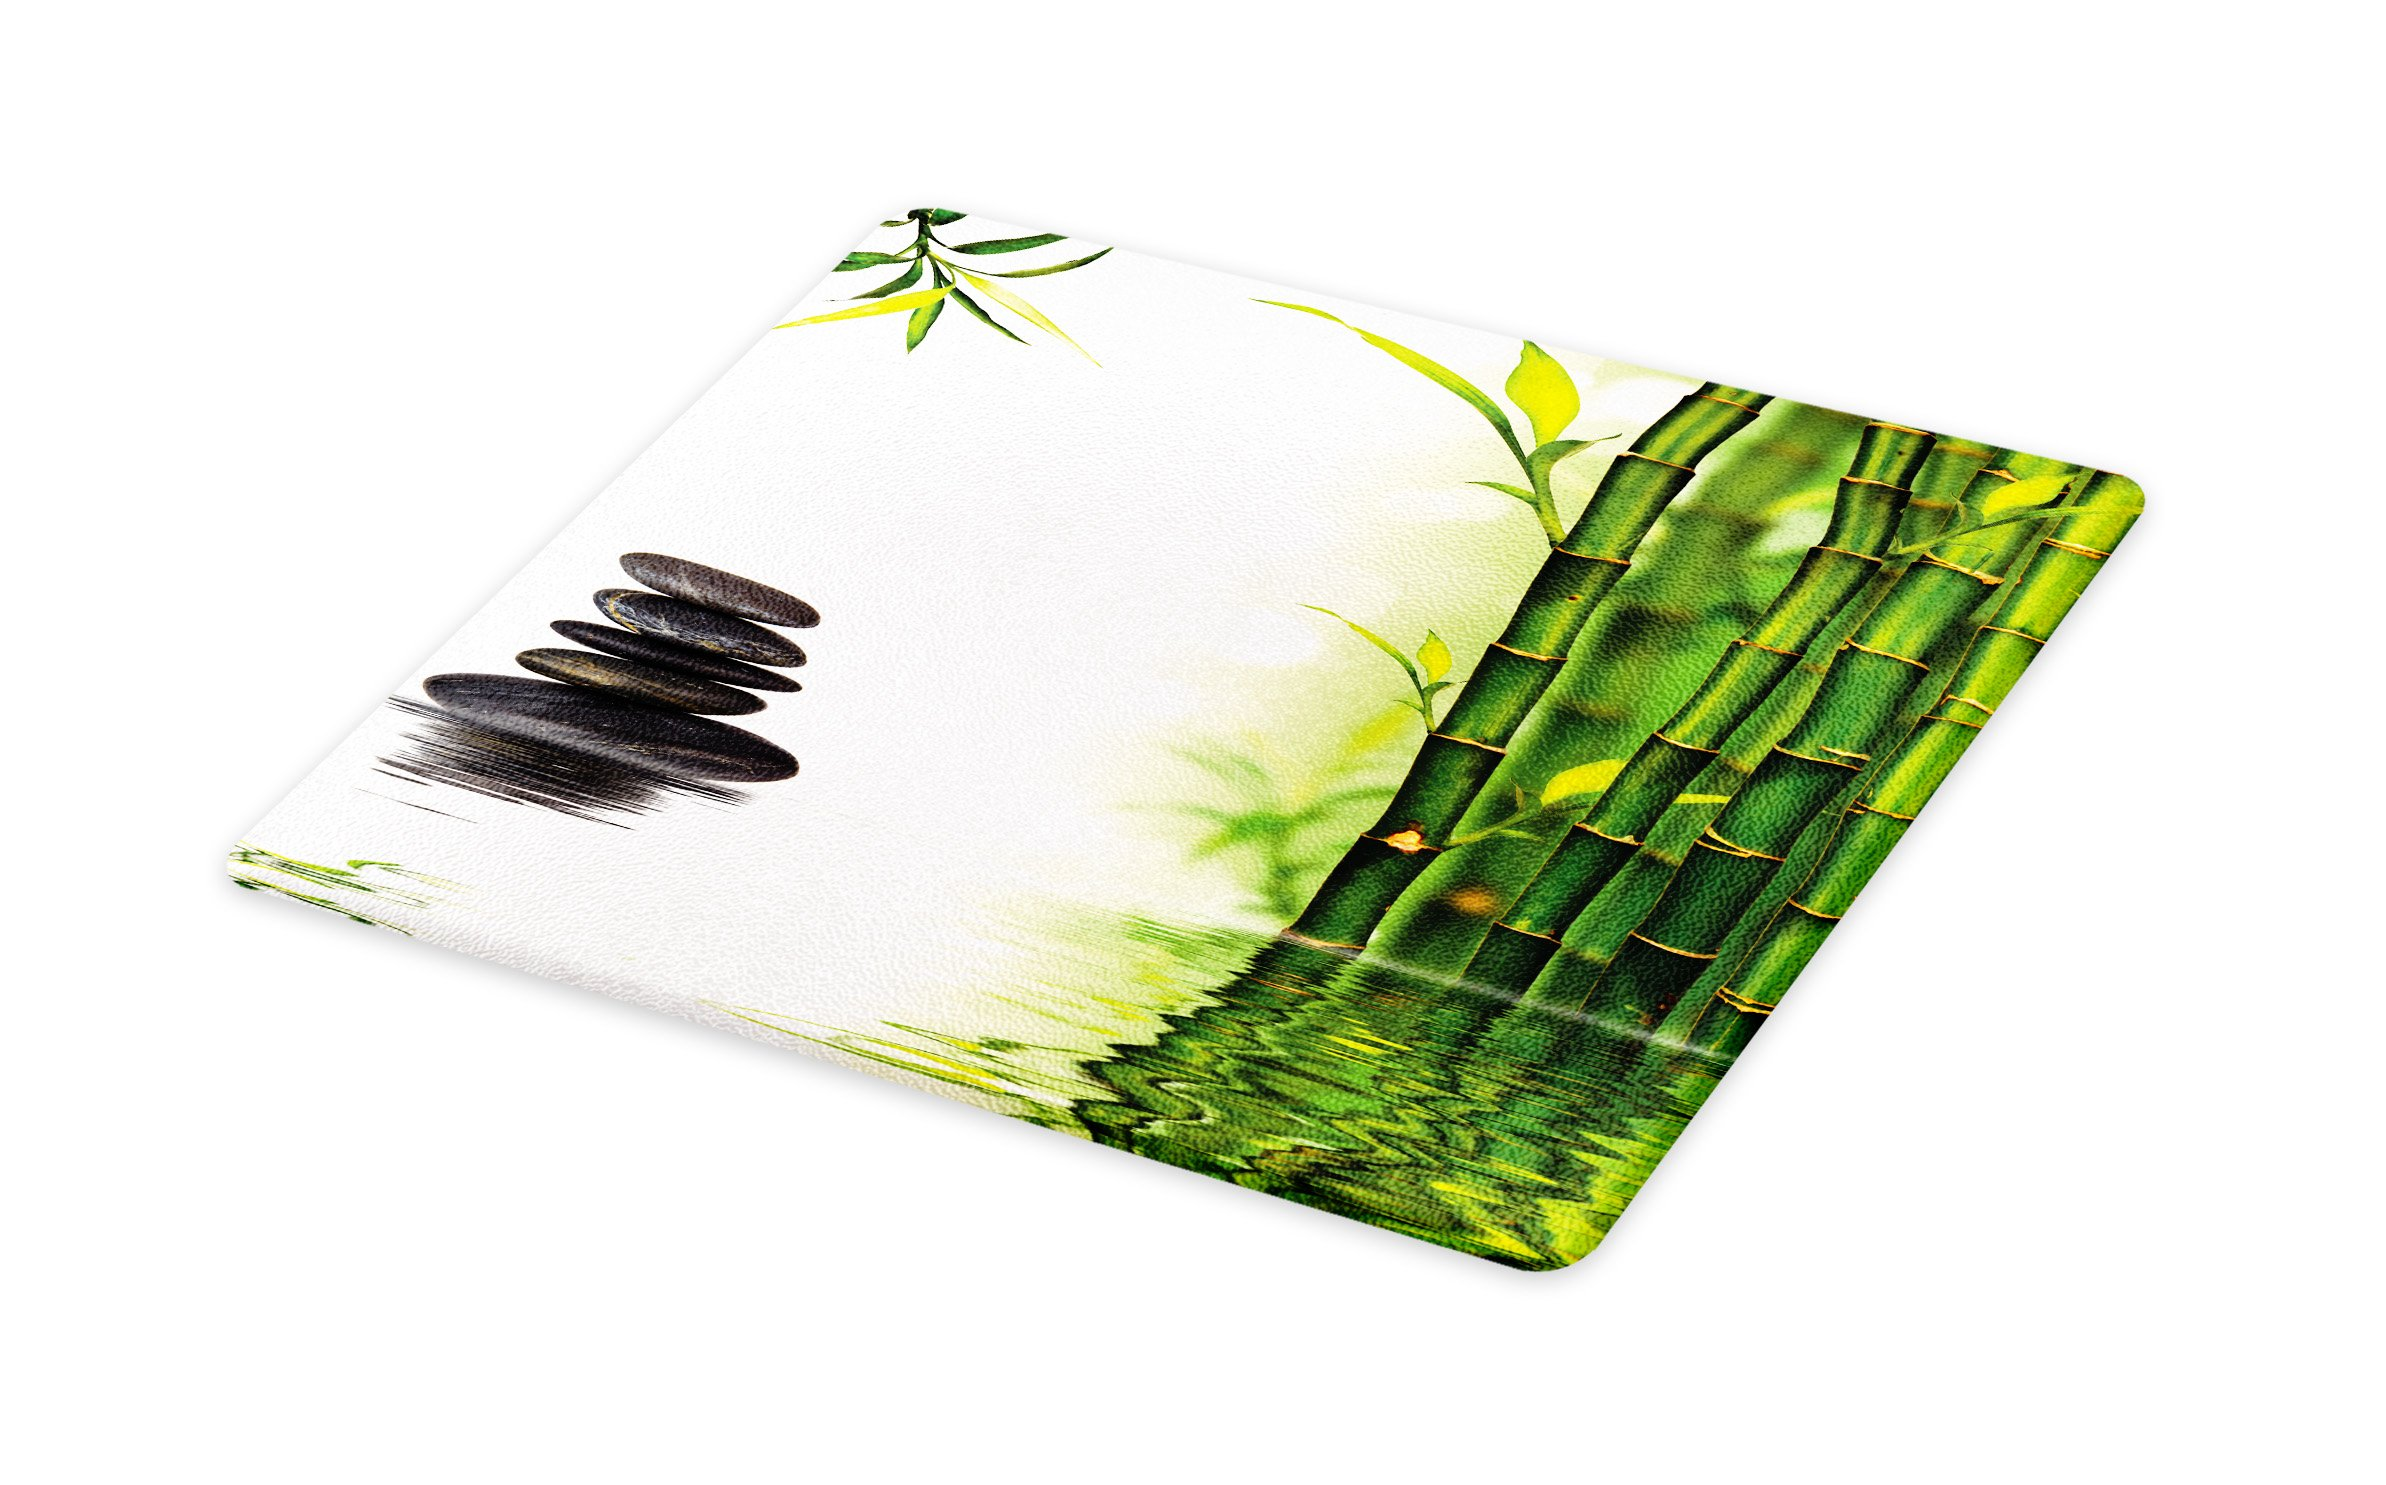 Lunarable Spa Cutting Board, Bamboos Reflecting to The Water Near The Hot Black Massage Stones Print, Decorative Tempered Glass Cutting and Serving Board, Large Size, Black Green and White